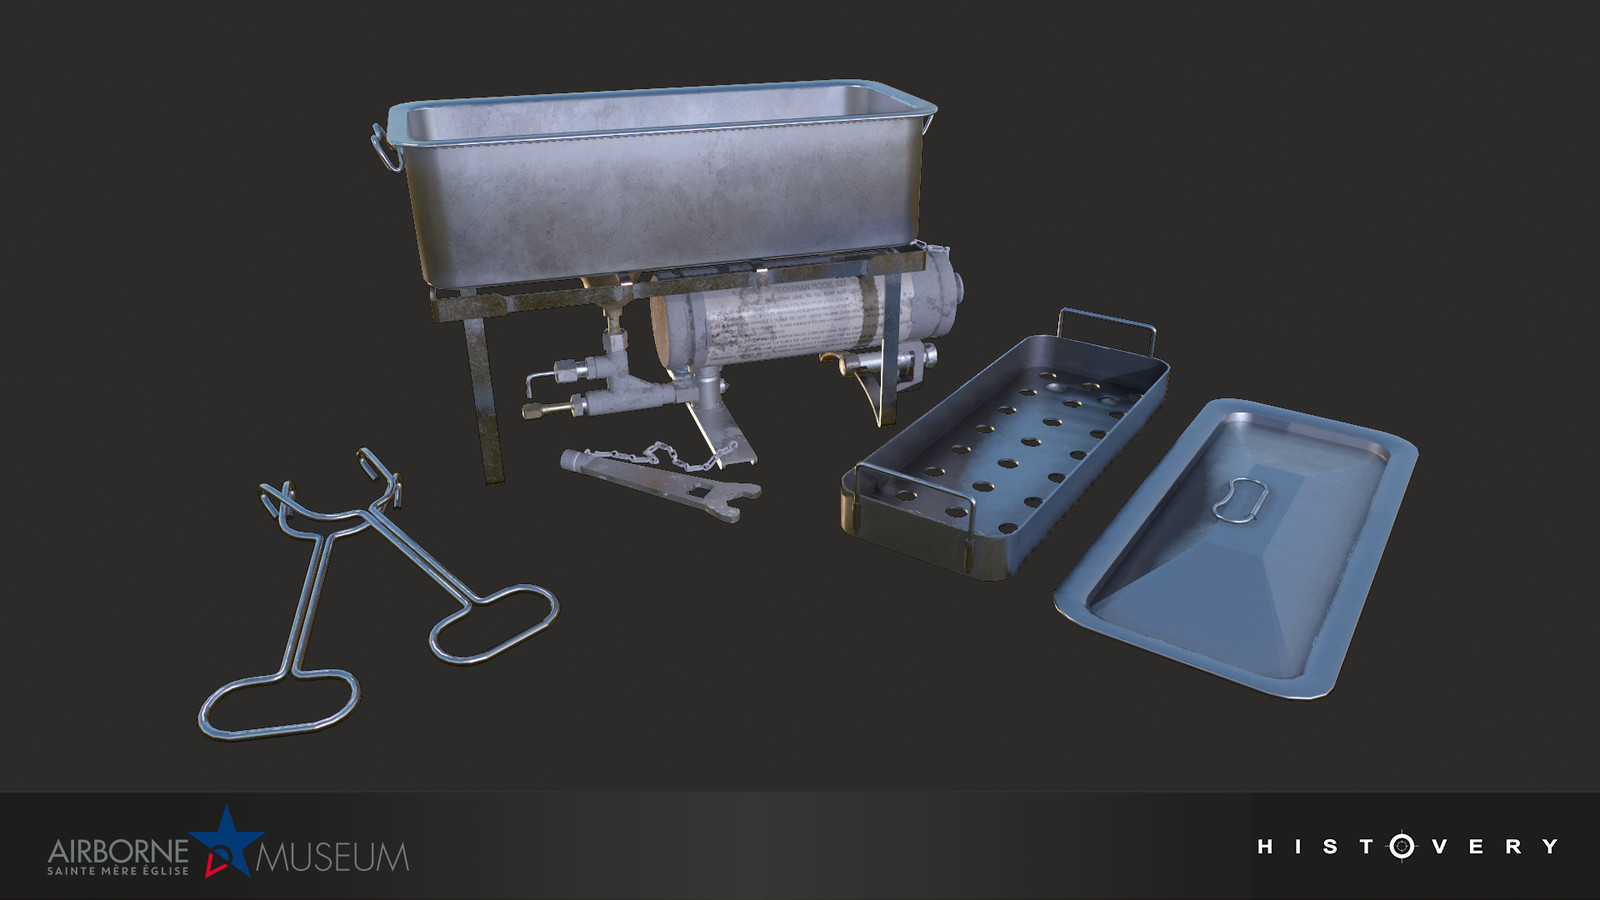 Coleman Sterilizer N. 527, used to sterilize forceps, scalpels, and other equipment.